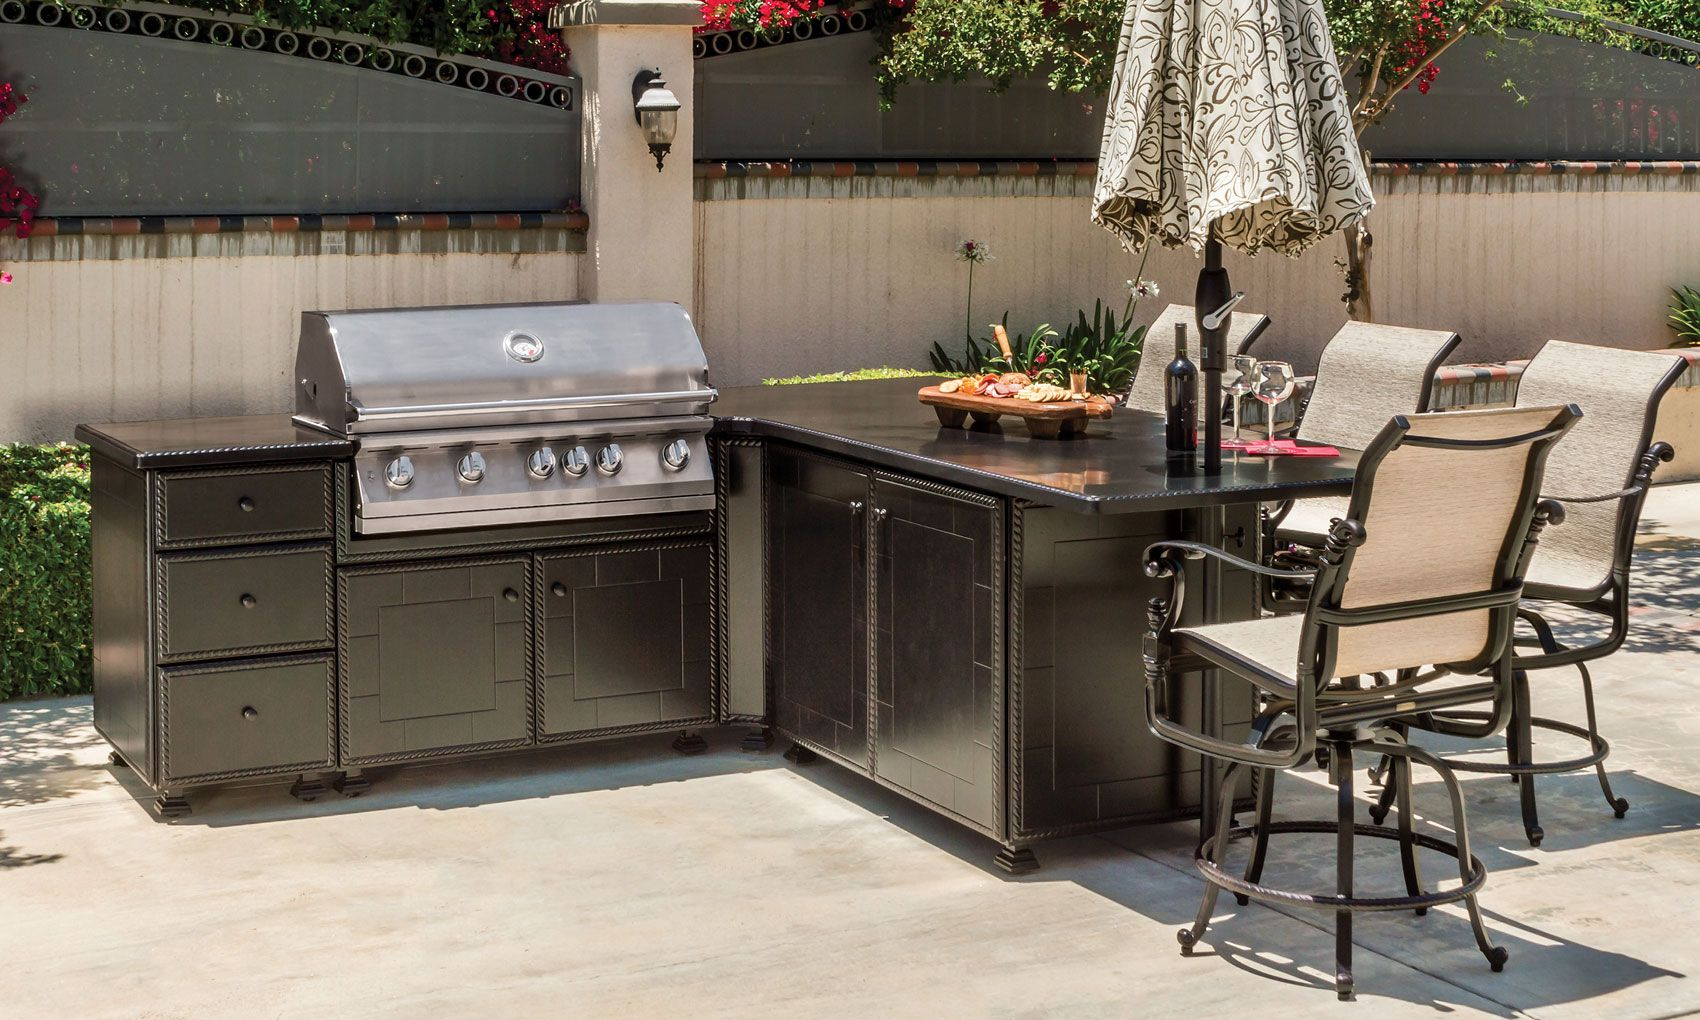 grill seating l shape island outdoor kitchens the great escape kitchen kitchen on outdoor kitchen island id=17783